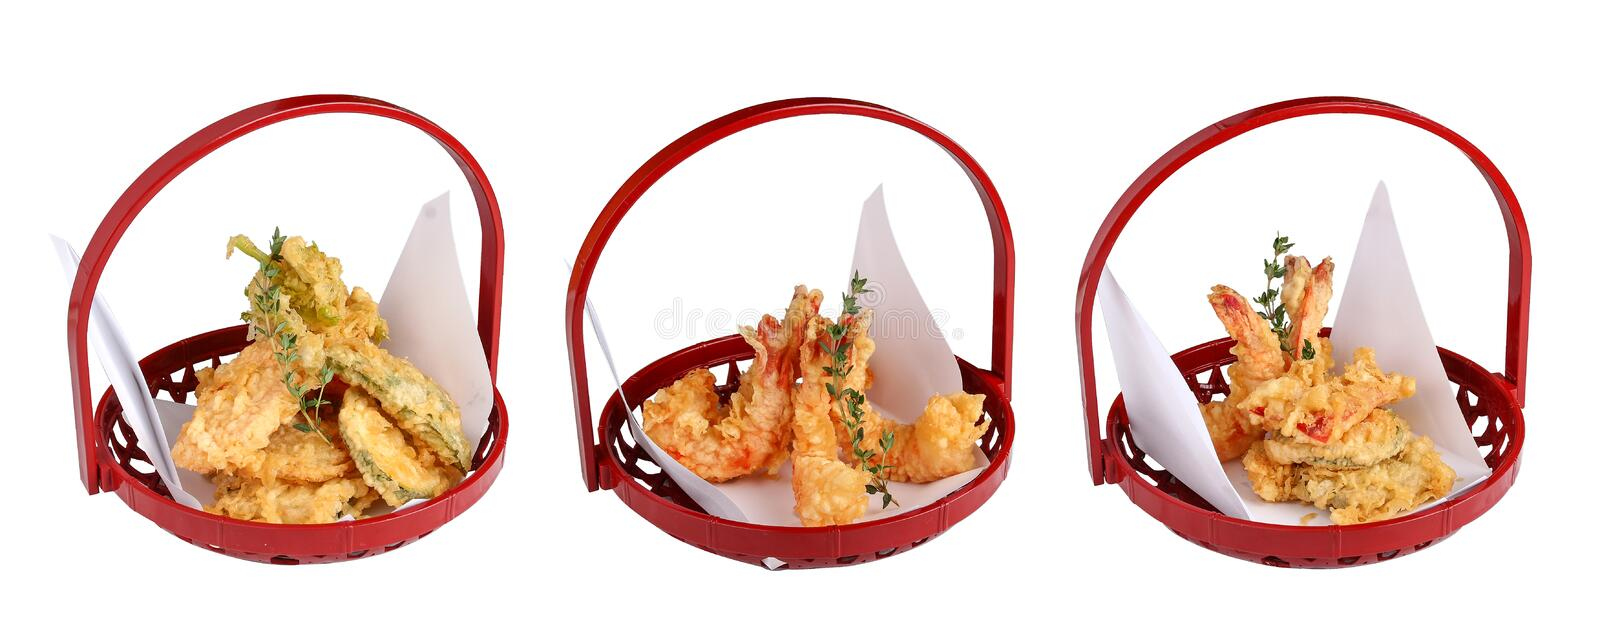 Tempura with seafood. Japanese traditional dish. On a white background stock image